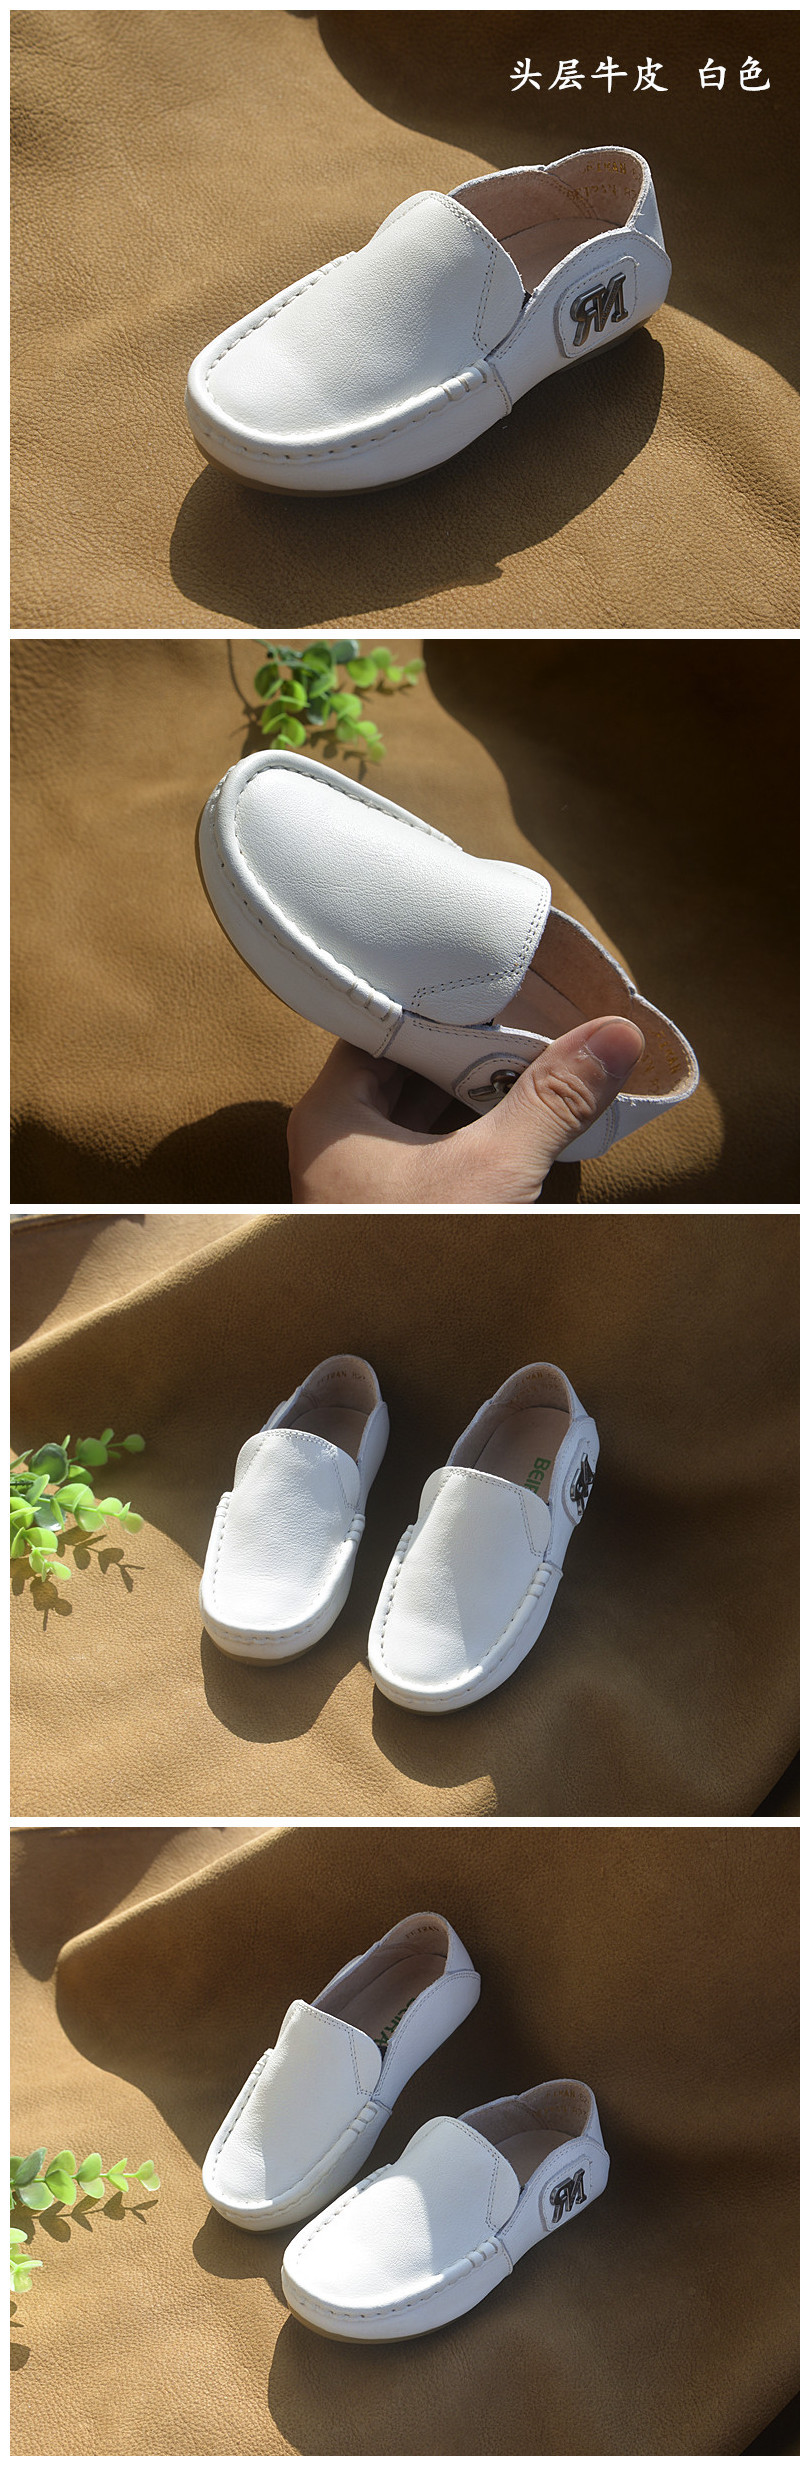 17 Kids new boys children's casual shoes baby boy high quality shoes for big boys kid comfort fashion sneakers shoes 4